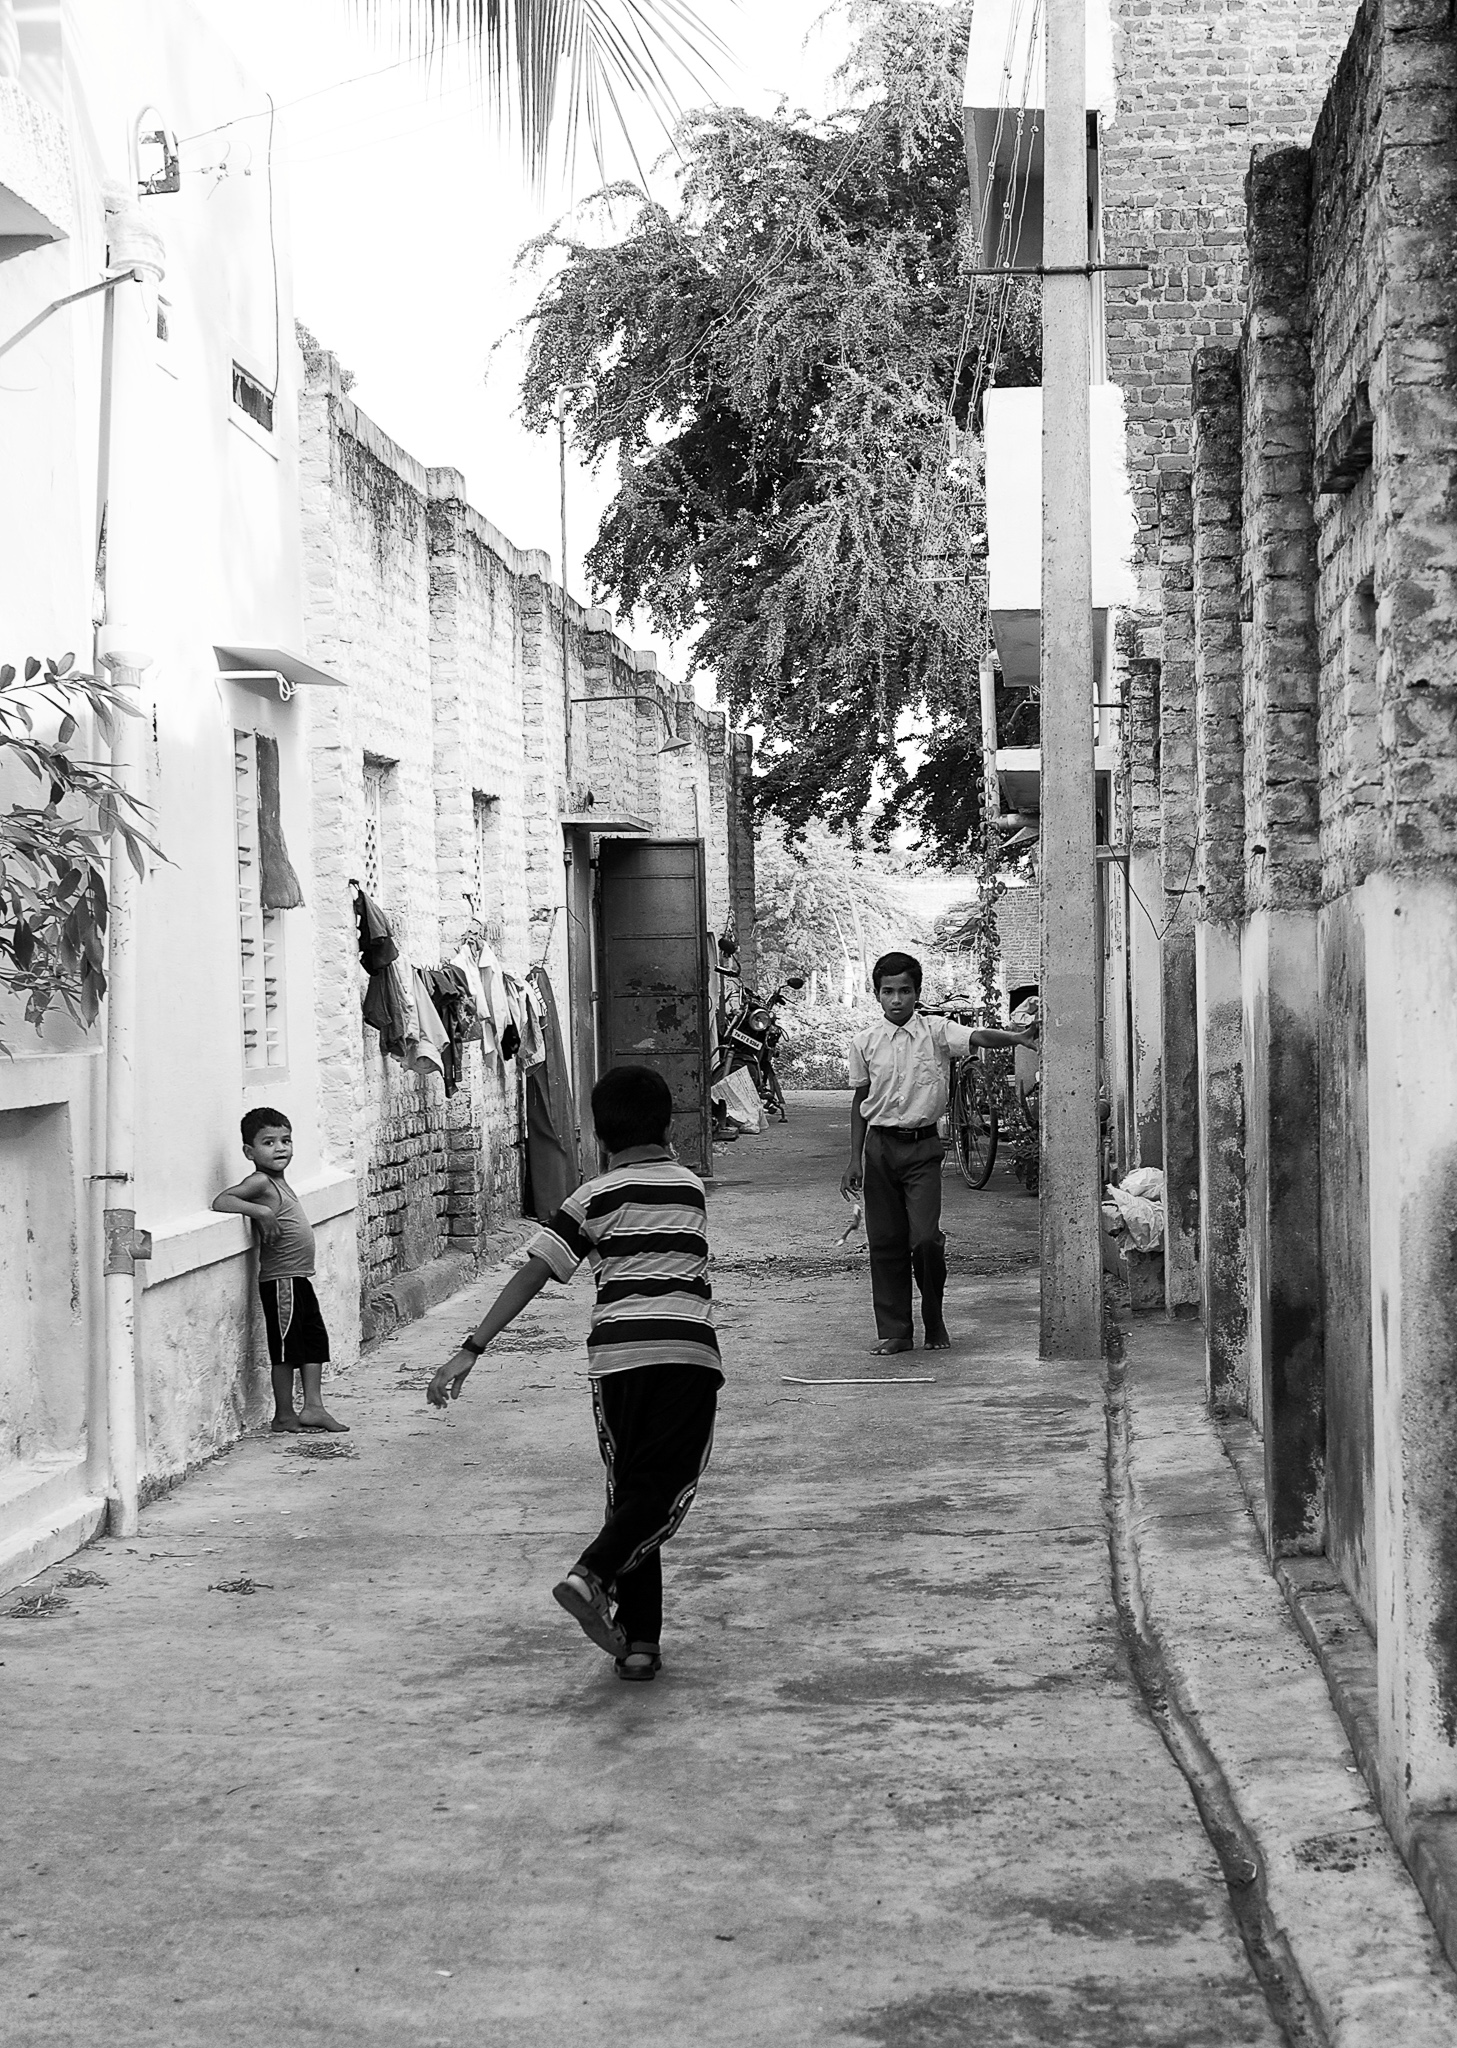 Kids playing the street game, kitti-pul (Gilli-danda) in a narrow lane, Virudhunagar, Tamil Nadu, India